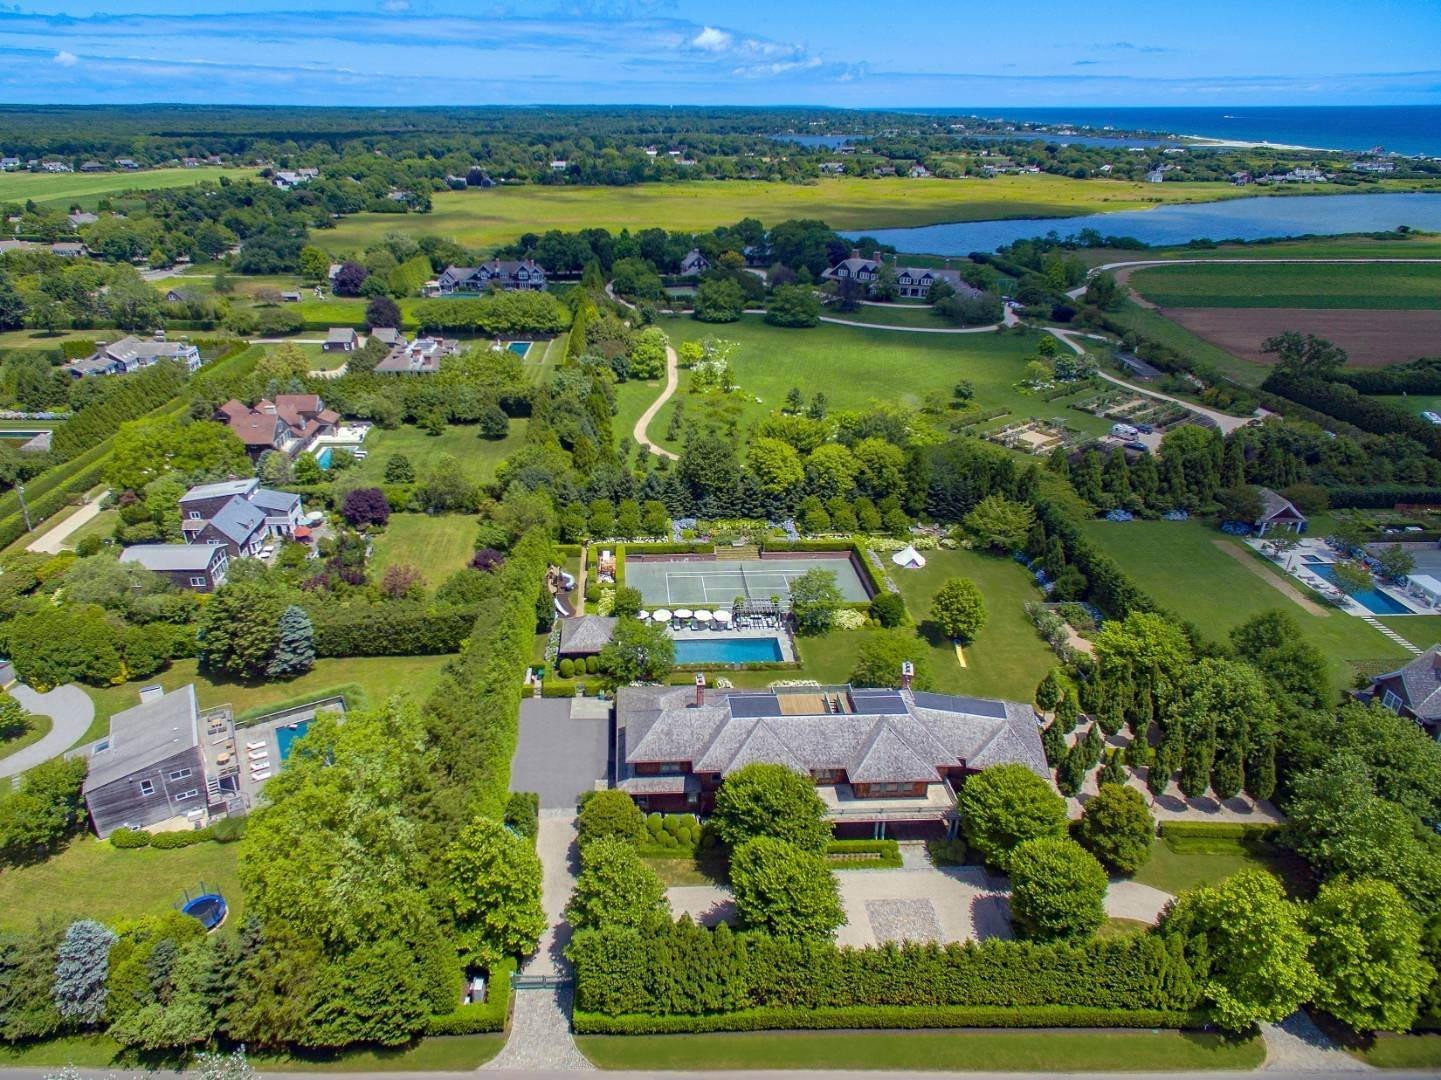 Single Family Home for Sale at Exceptional Hamptons Estate On Town Line Road 109 Town Line Road, Wainscott, NY 11975